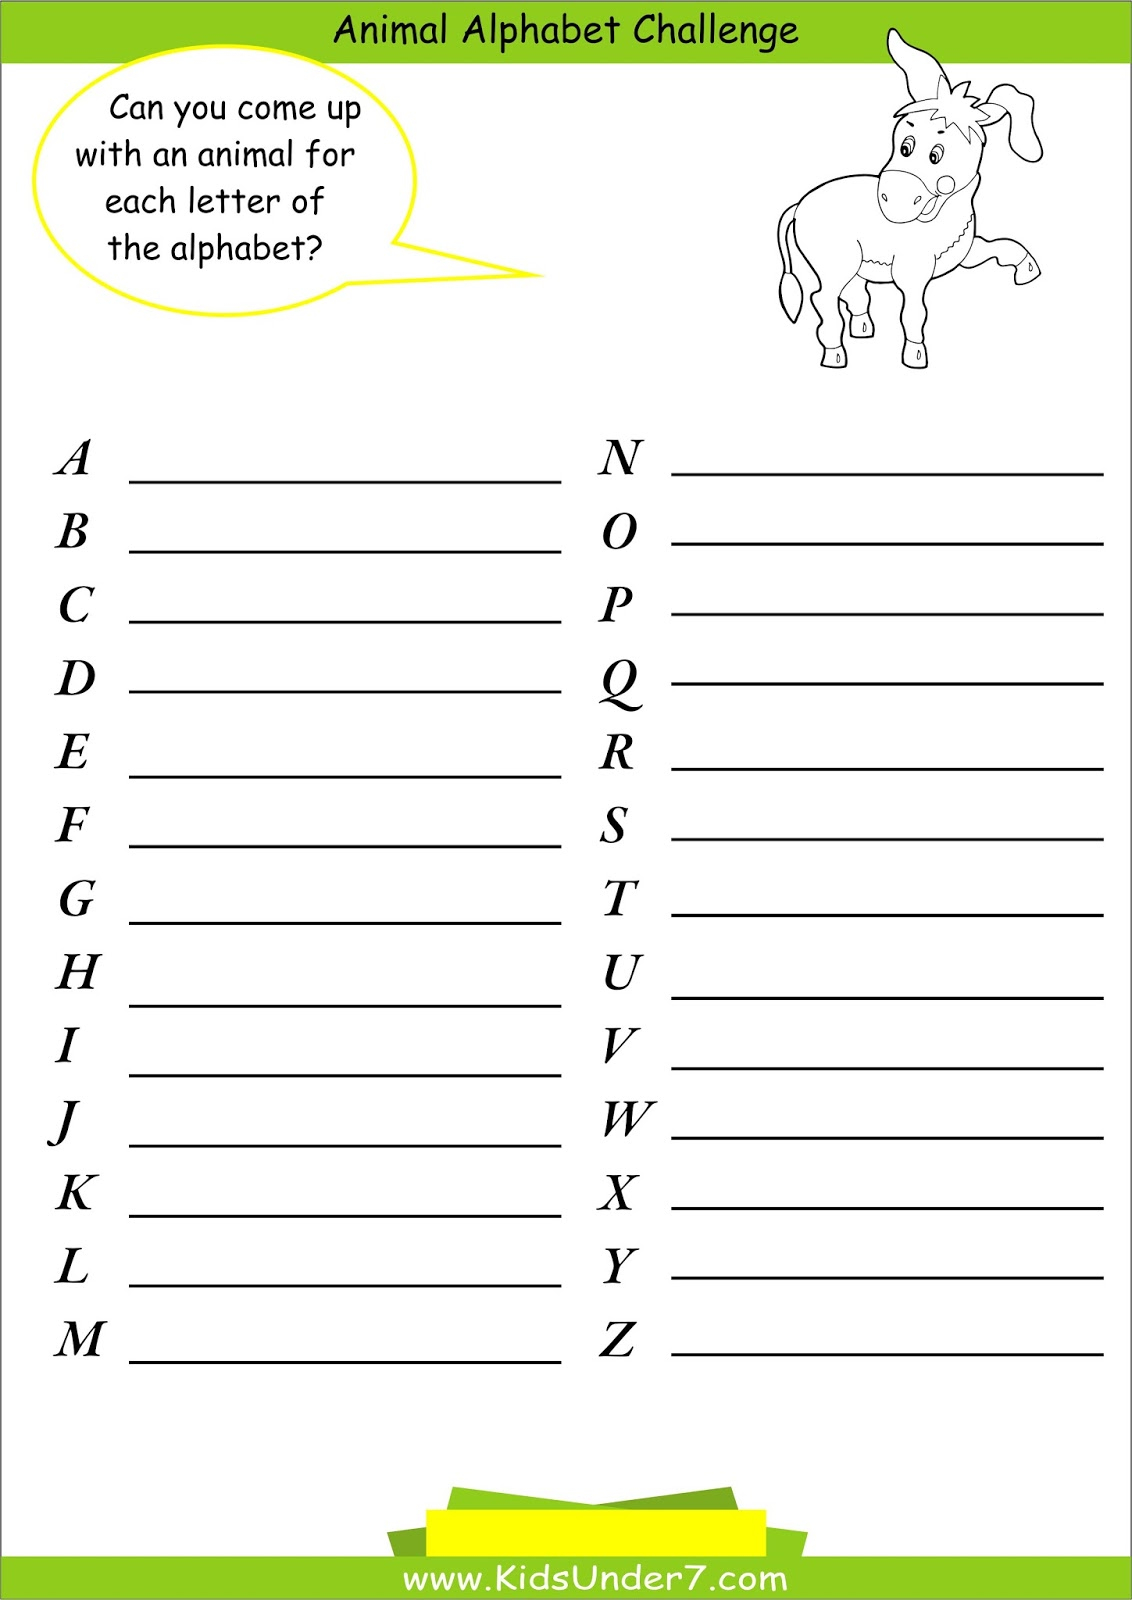 Kids Under 7: Animal Alphabet Challenge regarding Alphabet Challenge Worksheets